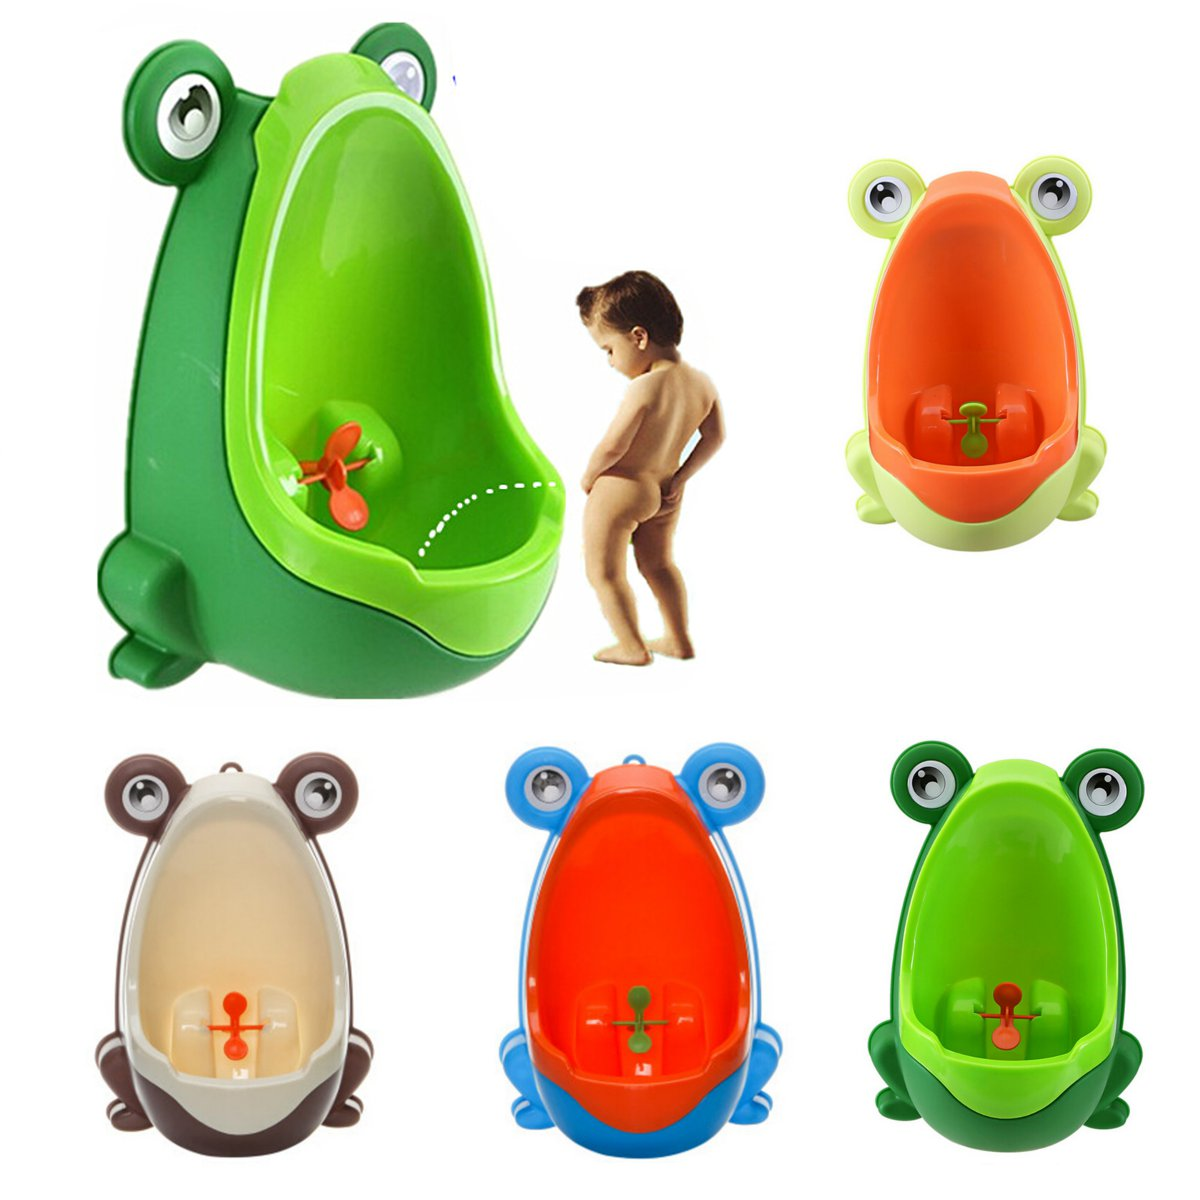 Cute Frog Potty Toilet Training Urinal for Boys Children Toddler Baby with Funny Aiming Pee Target SPECIAL TODAY !